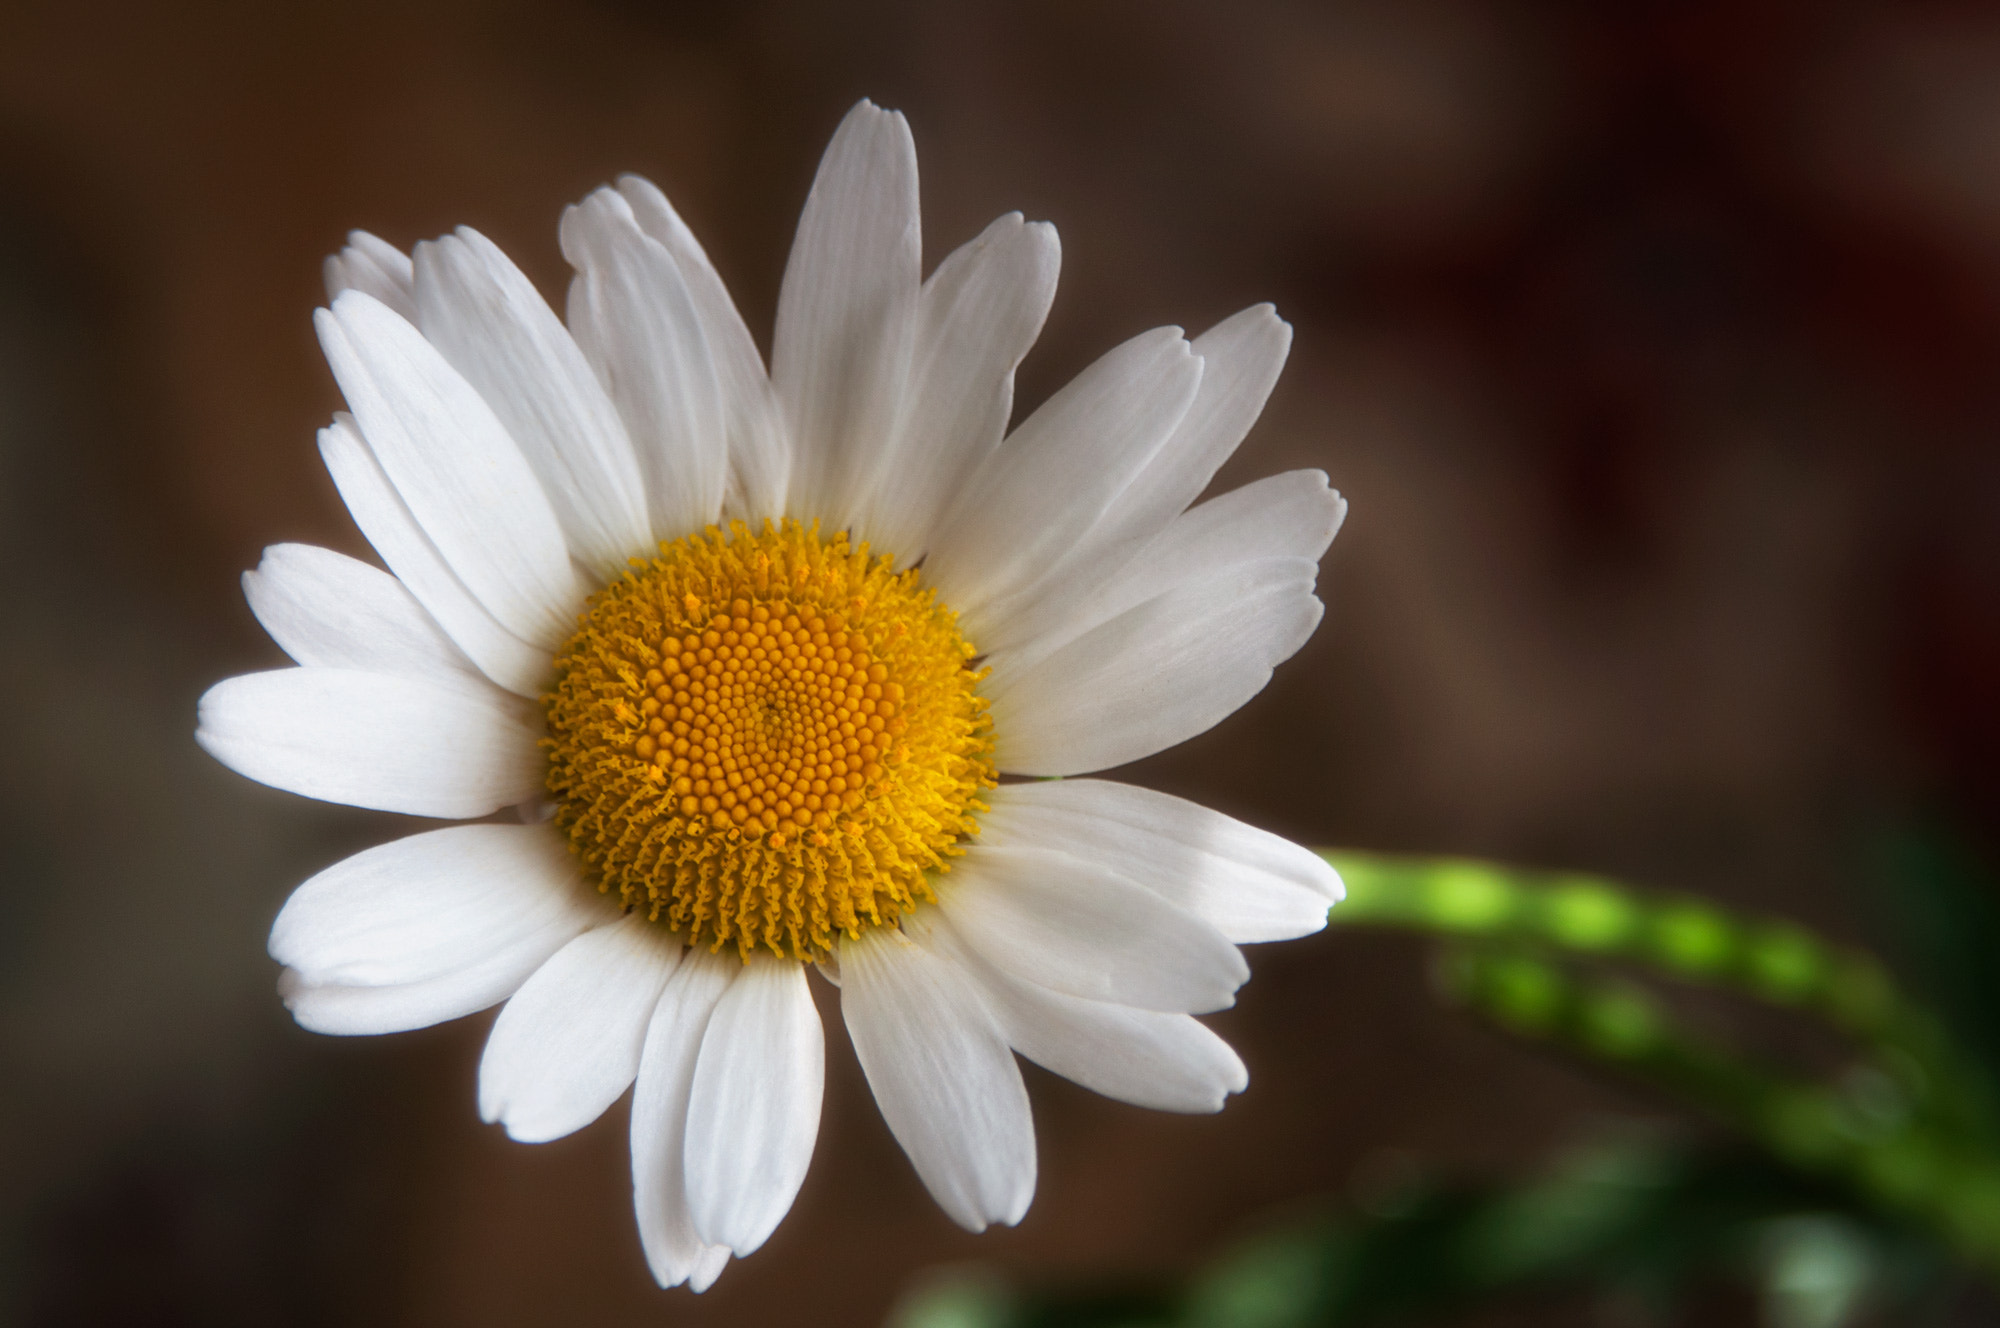 Photograph A Daisy a Day Keeps the Blues Away by Carla Stringari Pudler on 500px